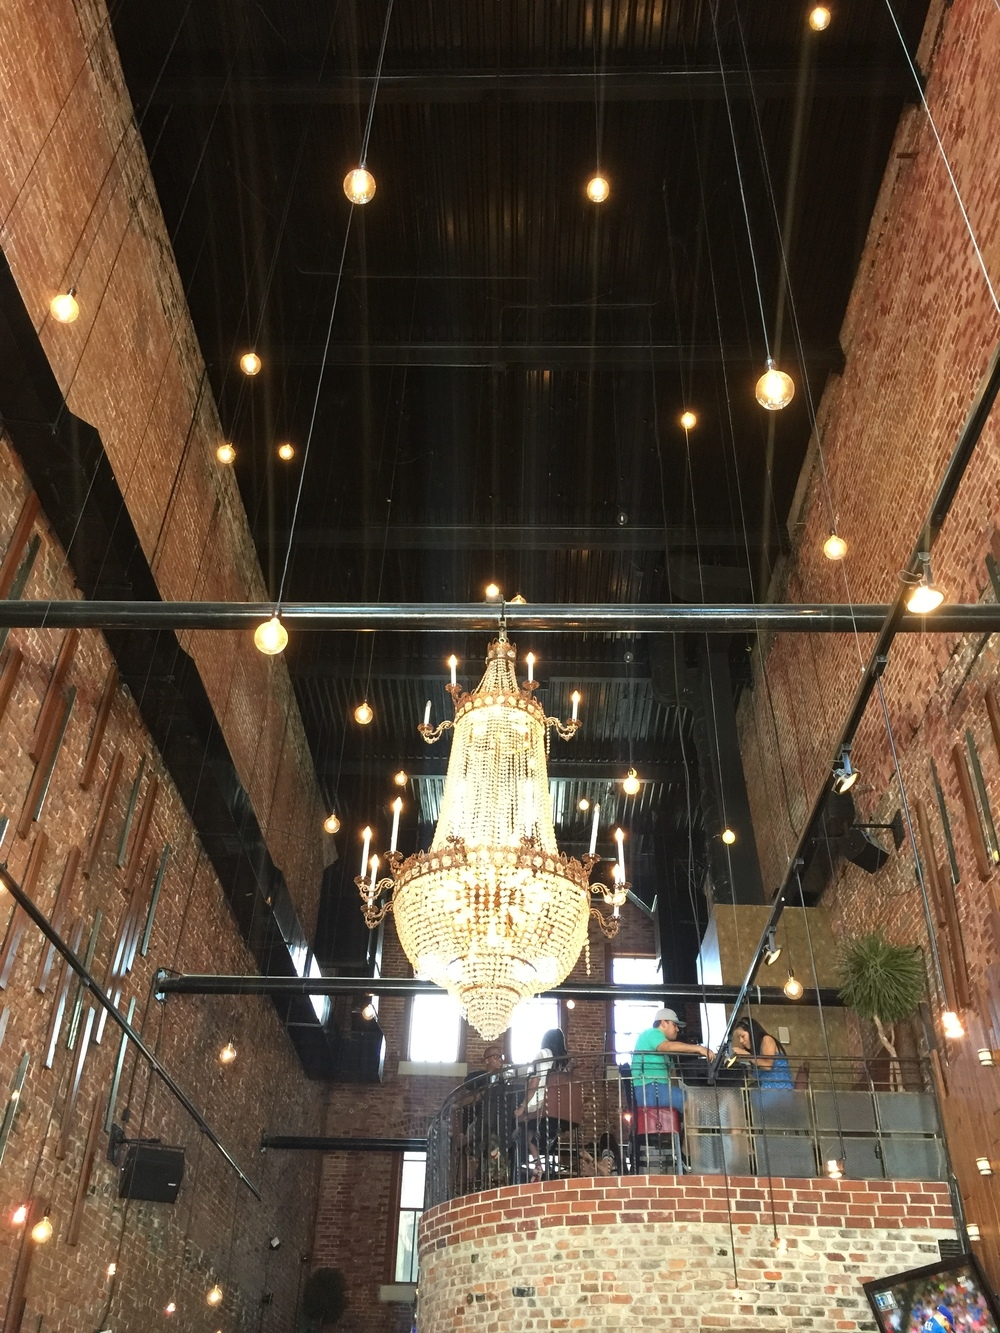 Houstons Hearsay Gastro Lounge Attracts Repeat Customers With Intended For Restaurant Chandelier (Image 8 of 15)